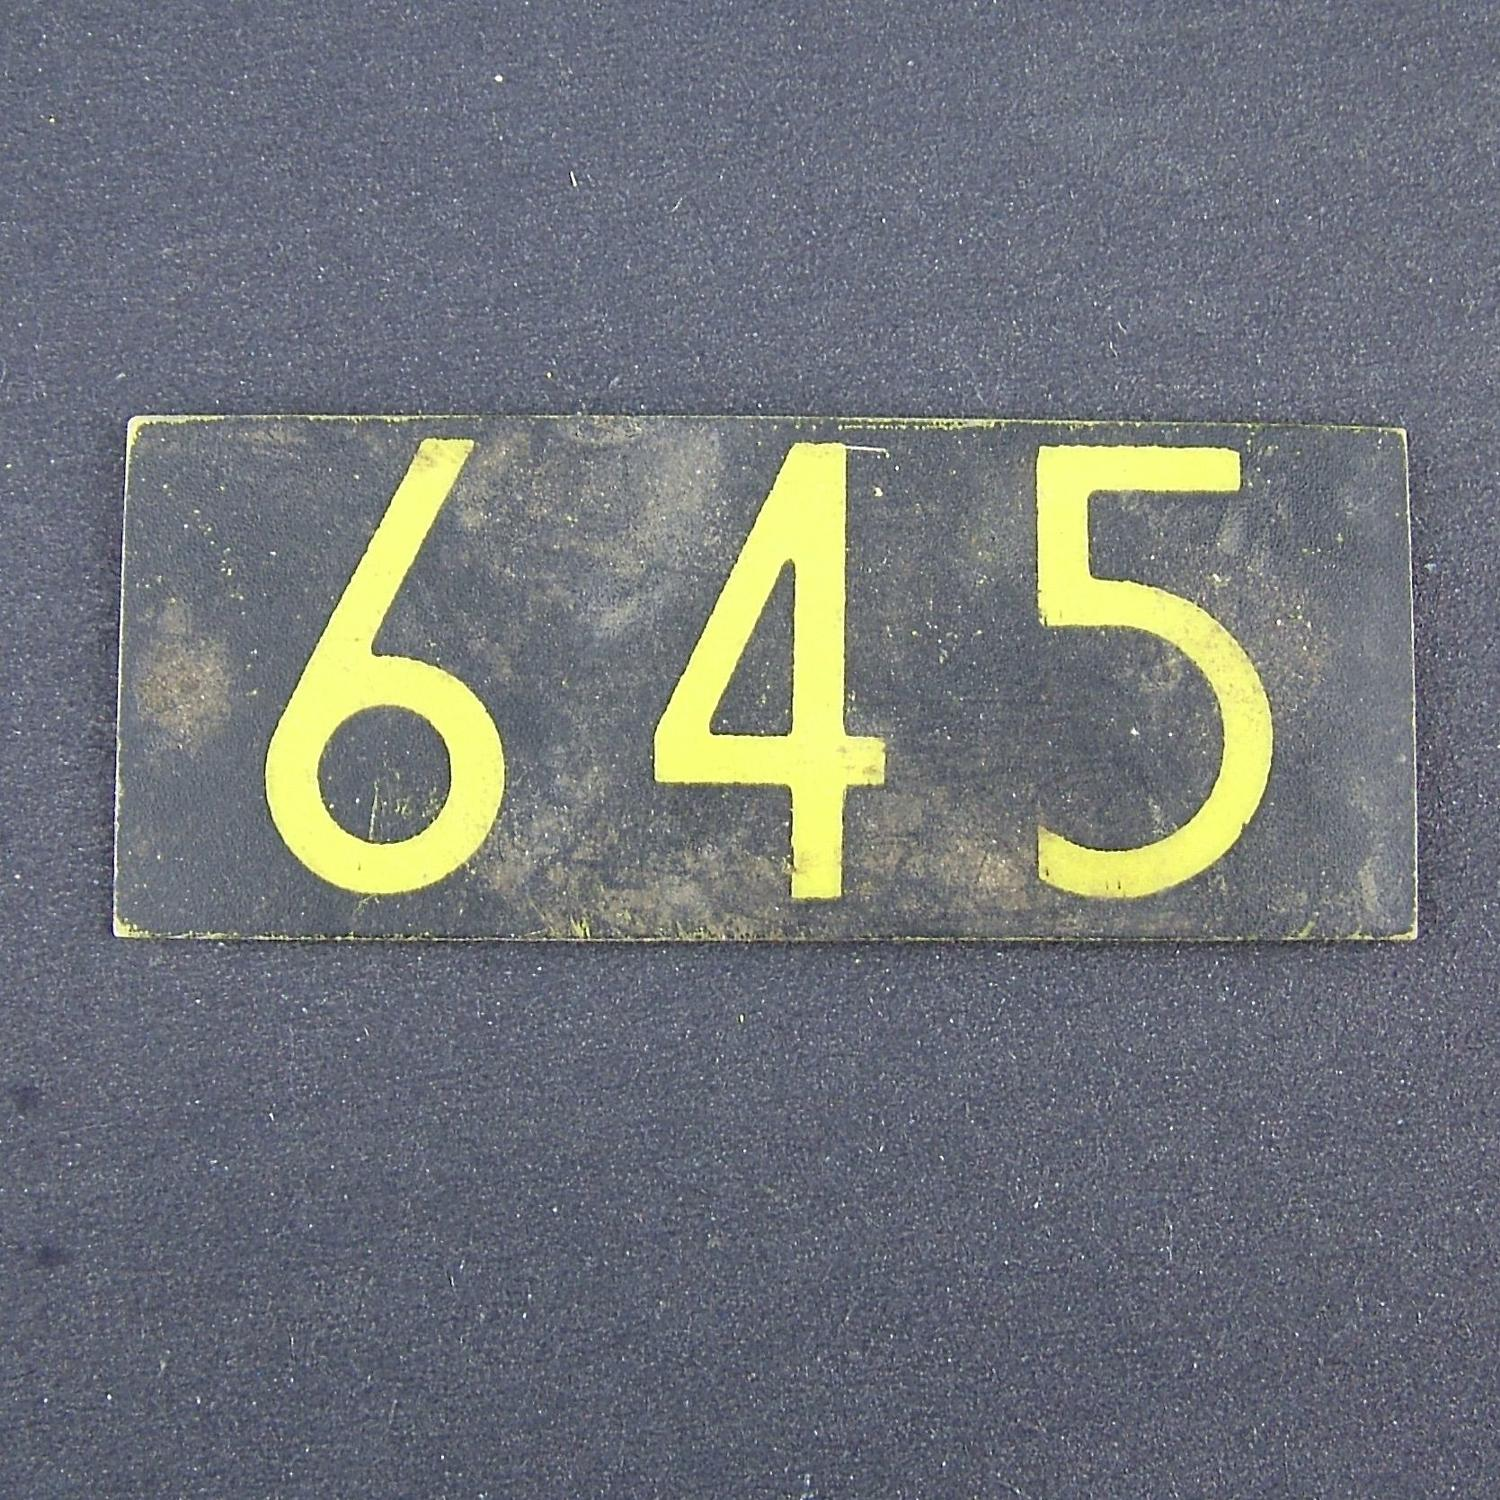 RAF operations room raid block plotting tile '645'